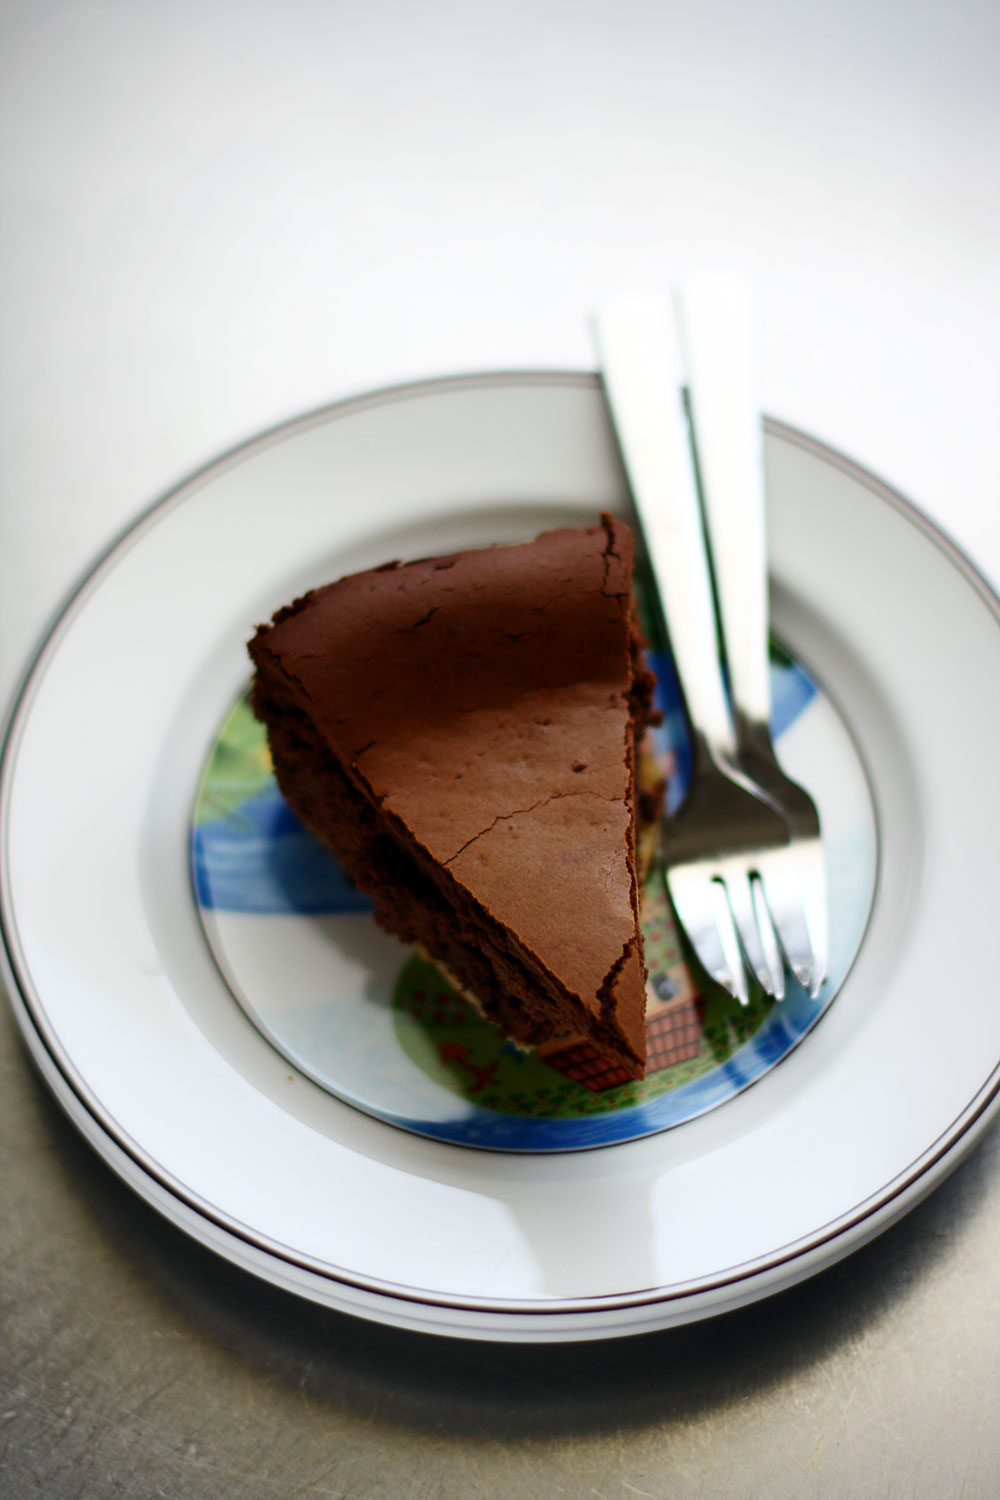 Chocolate Cheesecake 2